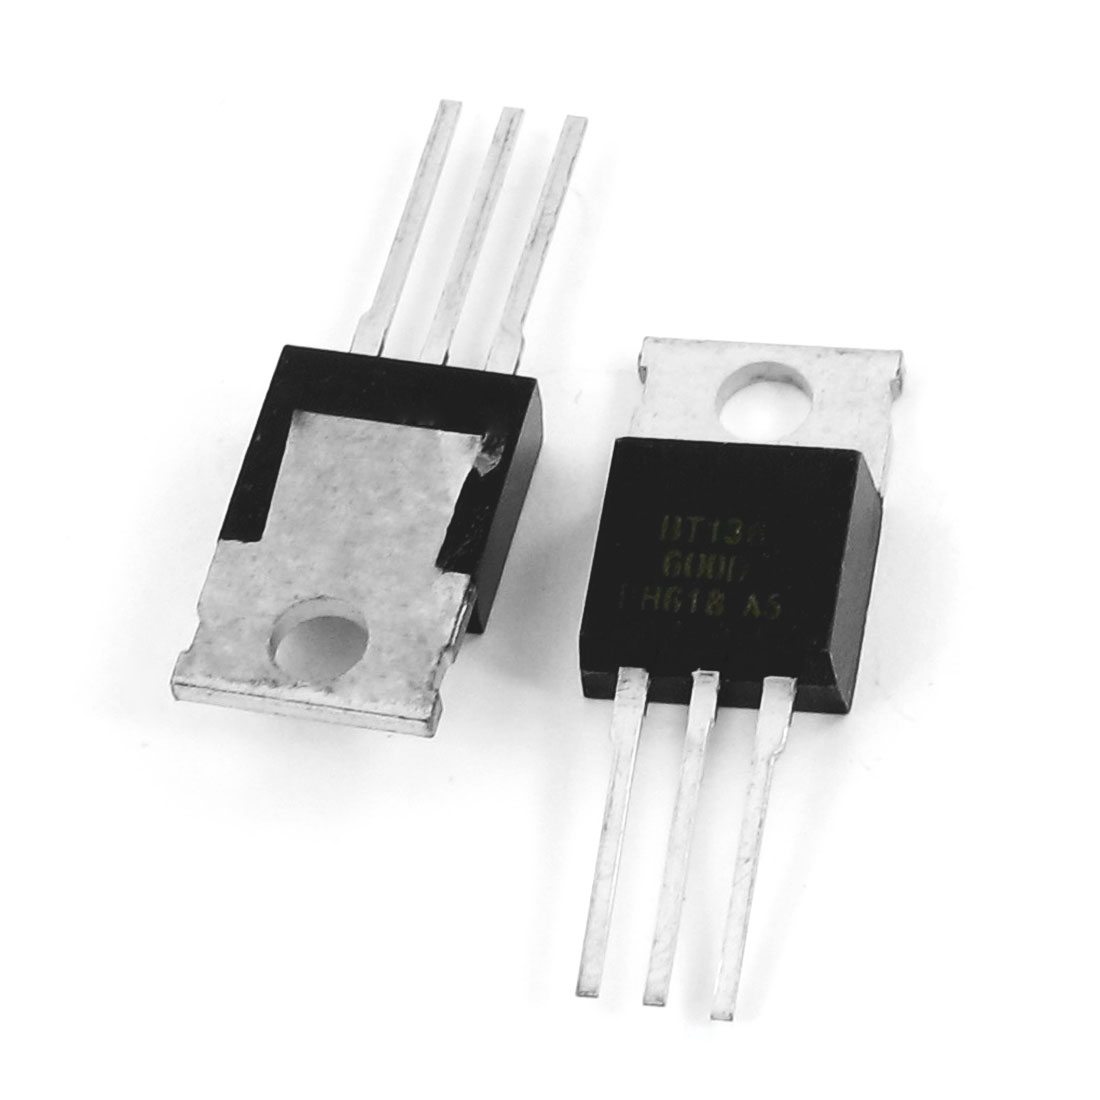 2 Pcs BT136-600E 600V 4Amp High Switching Speed Silicon Transistor